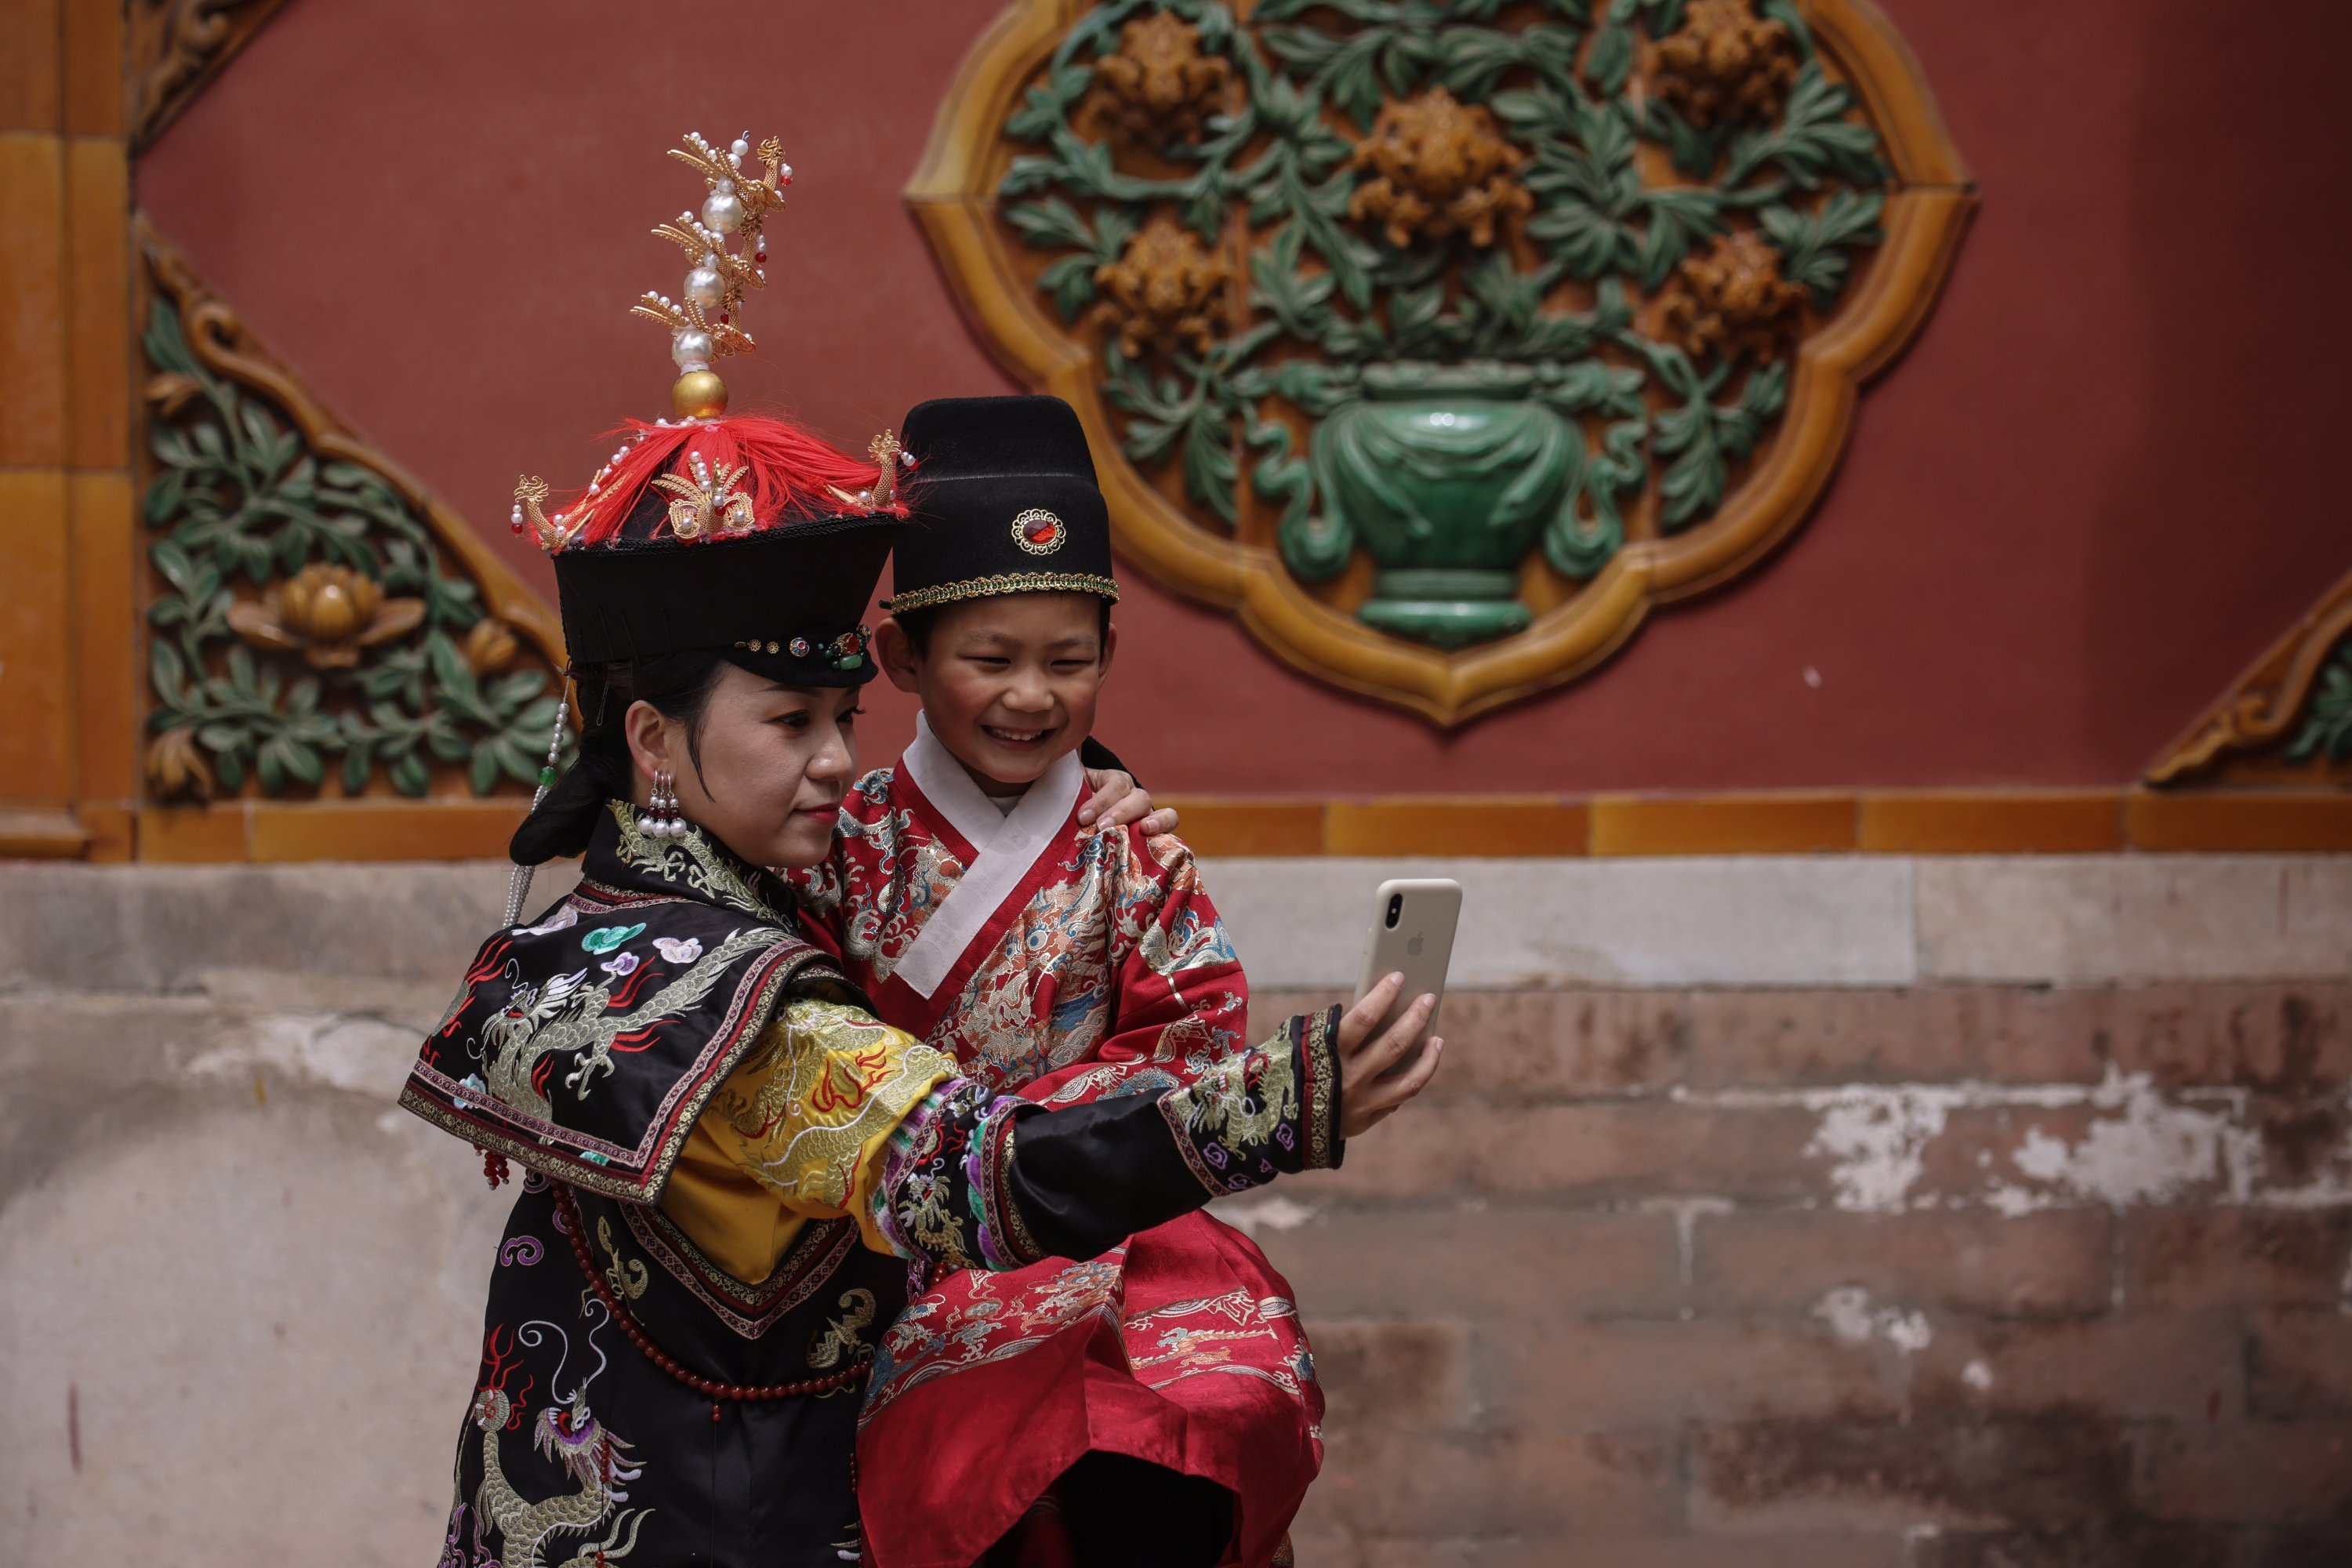 Tourists wearing Chinese traditional clothes take selfies in the Forbidden City during a media event while visiting the Forbidden City in Beijing, China, April 16, 2021. (EPA Photo)